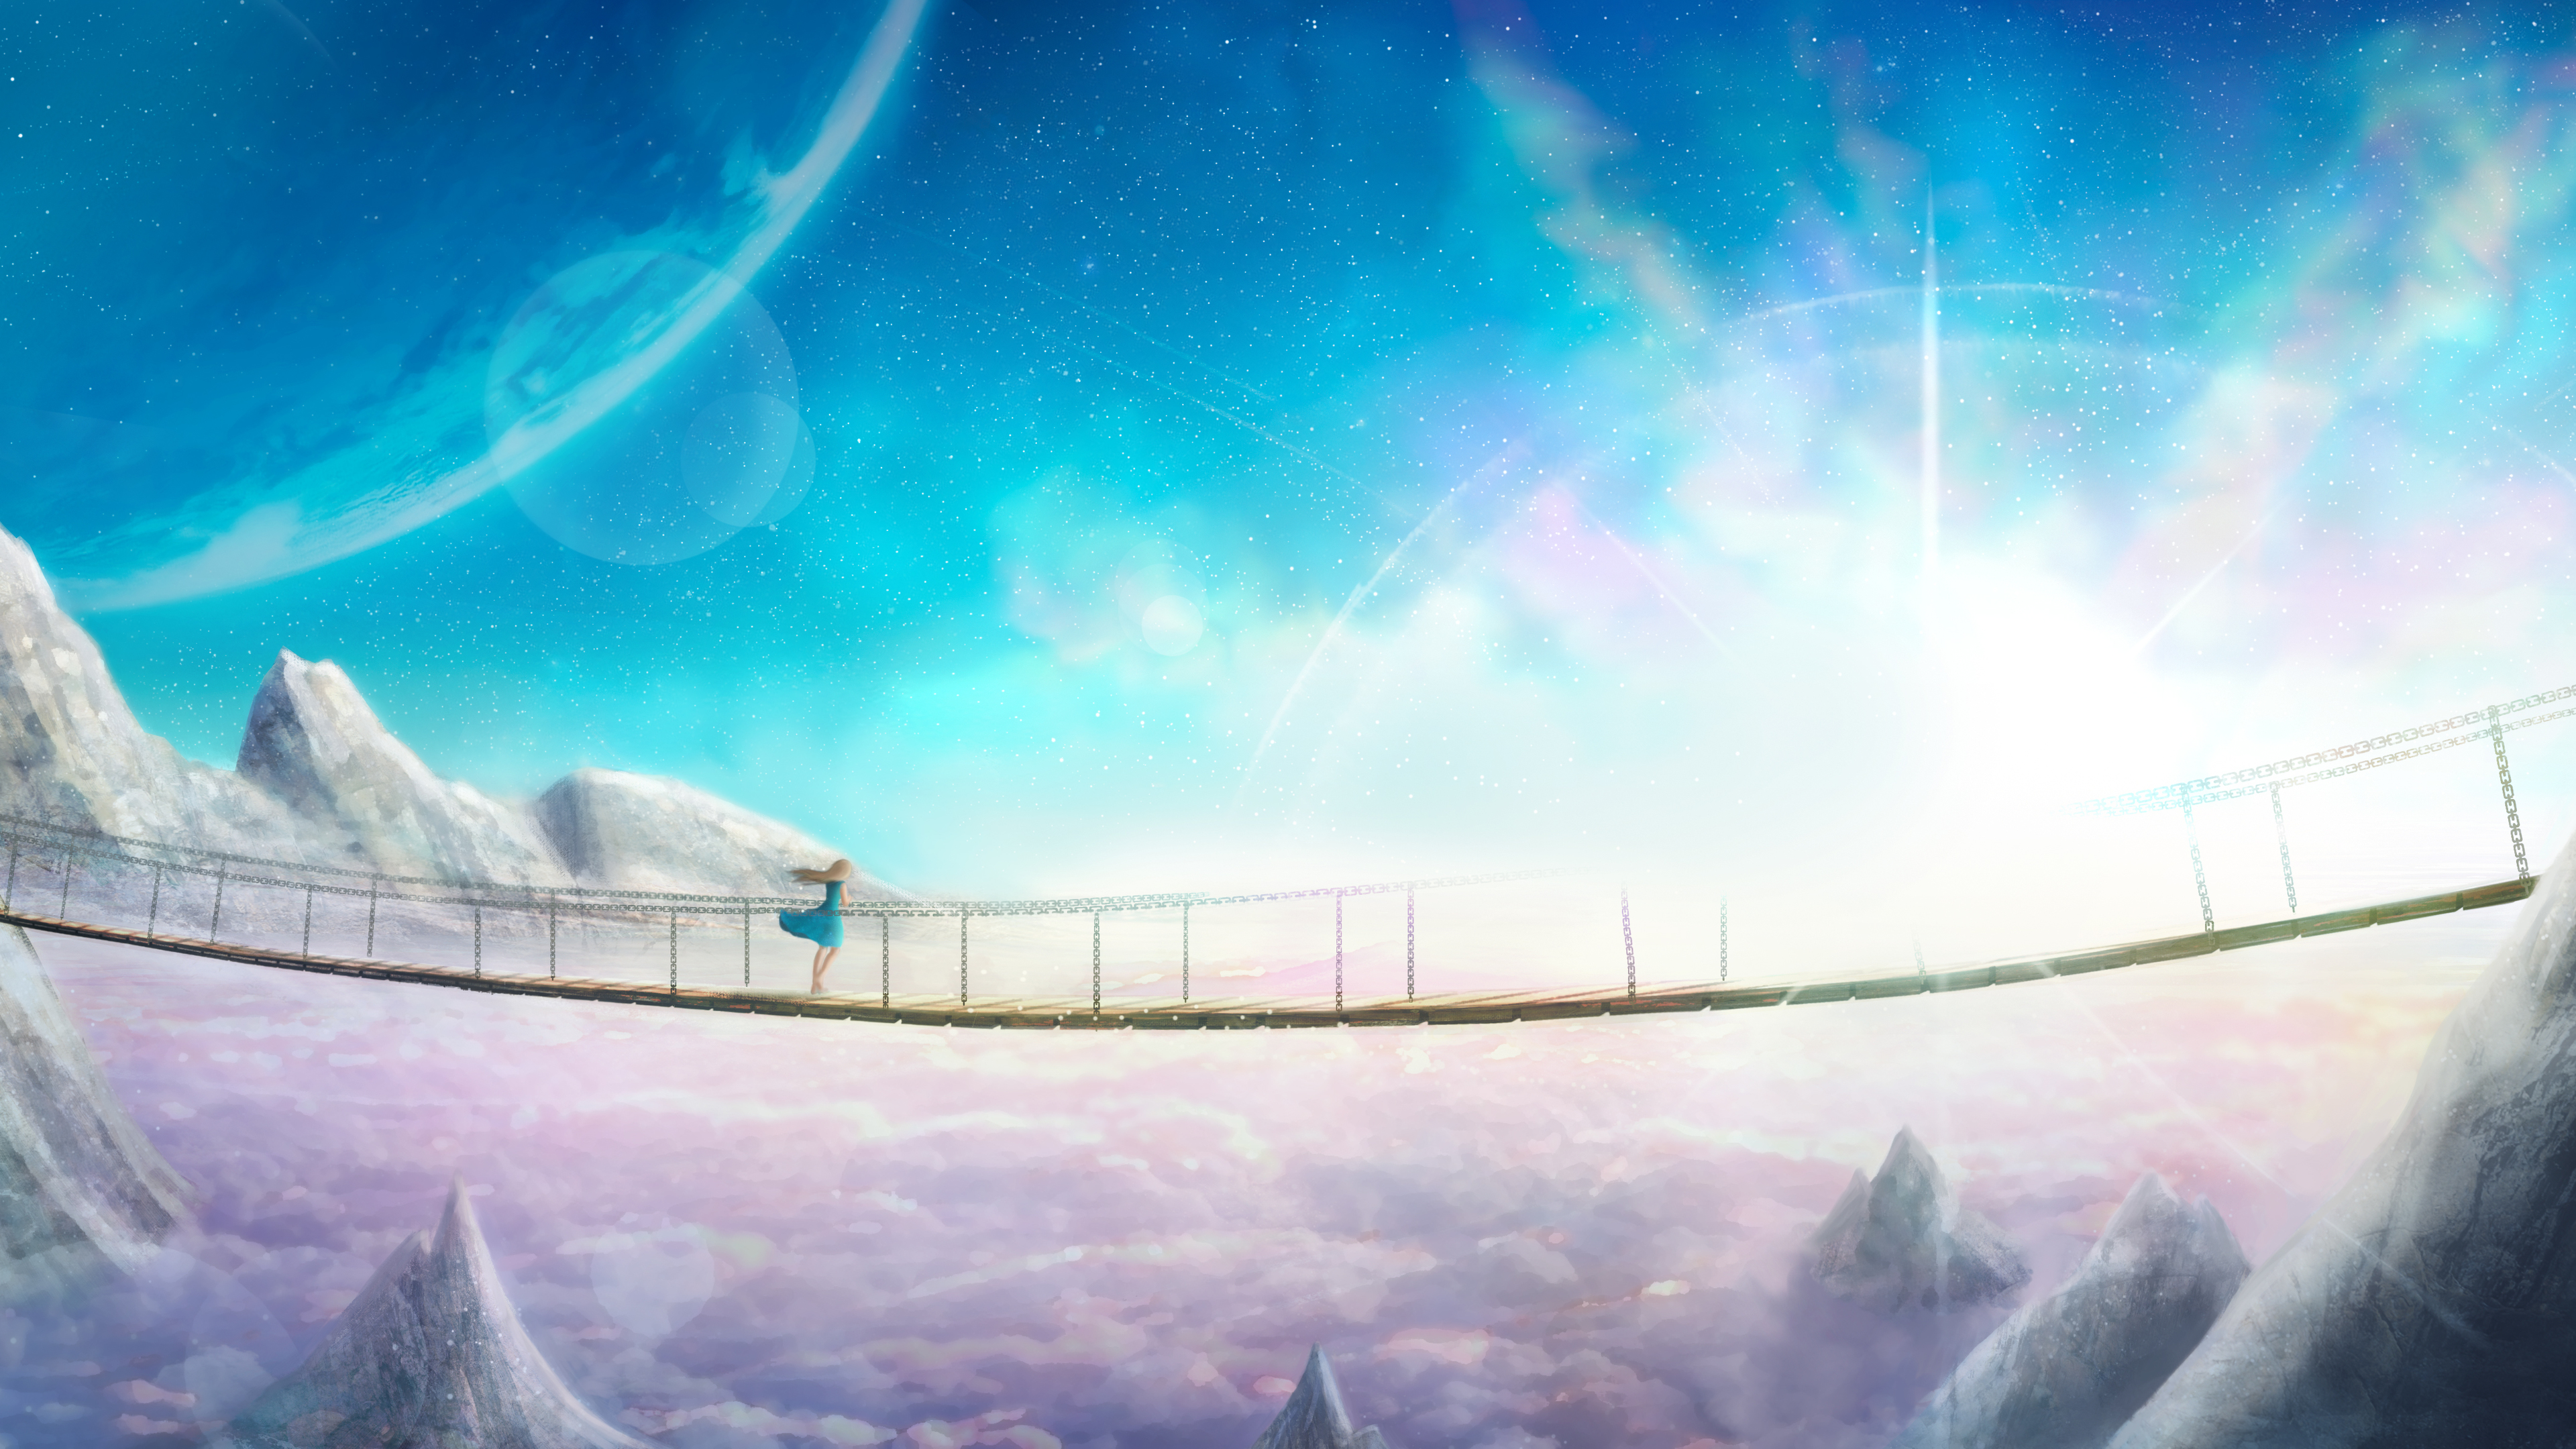 supernova anime landscape 1543946671 - Supernova Anime Landscape - hd-wallpapers, fantasy wallpapers, digital art wallpapers, deviantart wallpapers, bridge wallpapers, artwork wallpapers, artist wallpapers, anime wallpapers, anime girl wallpapers, alone wallpapers, 4k-wallpapers